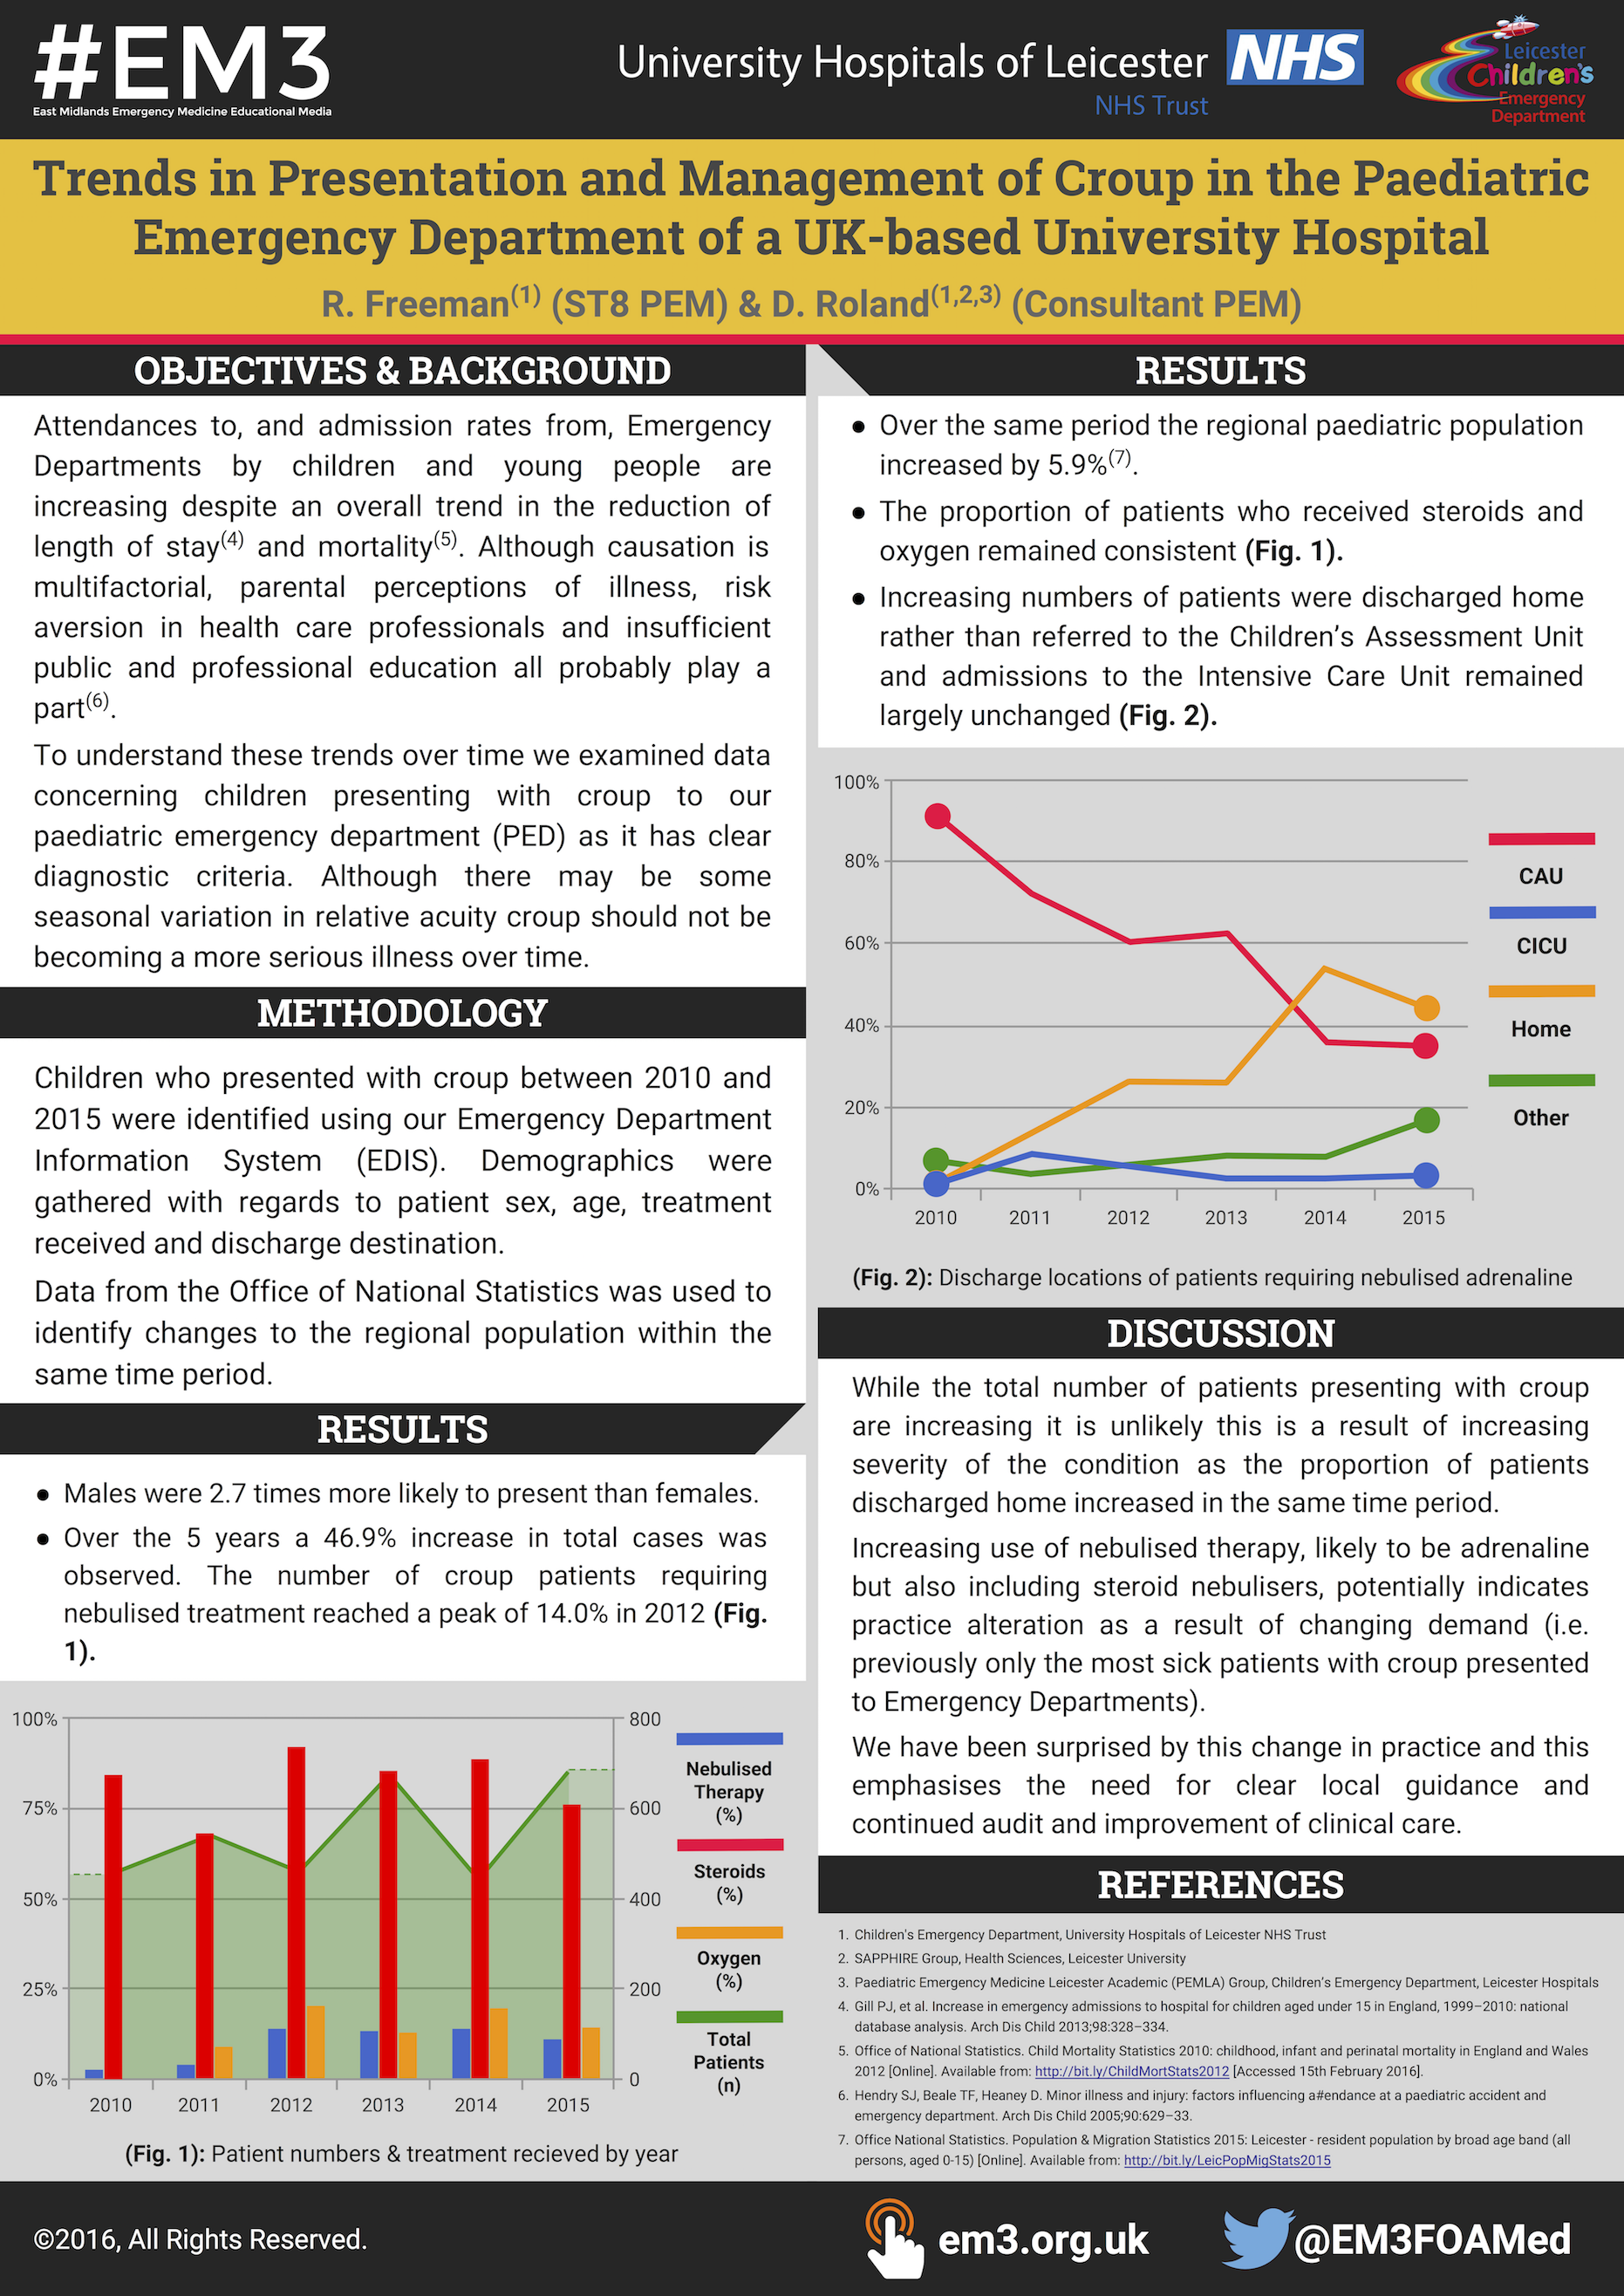 Trends in Presentation and Management of Croup in the Paediatric Emergency Department of a UK-based University Hospital by Richard Freeman (RCEM16 poster - A0).png